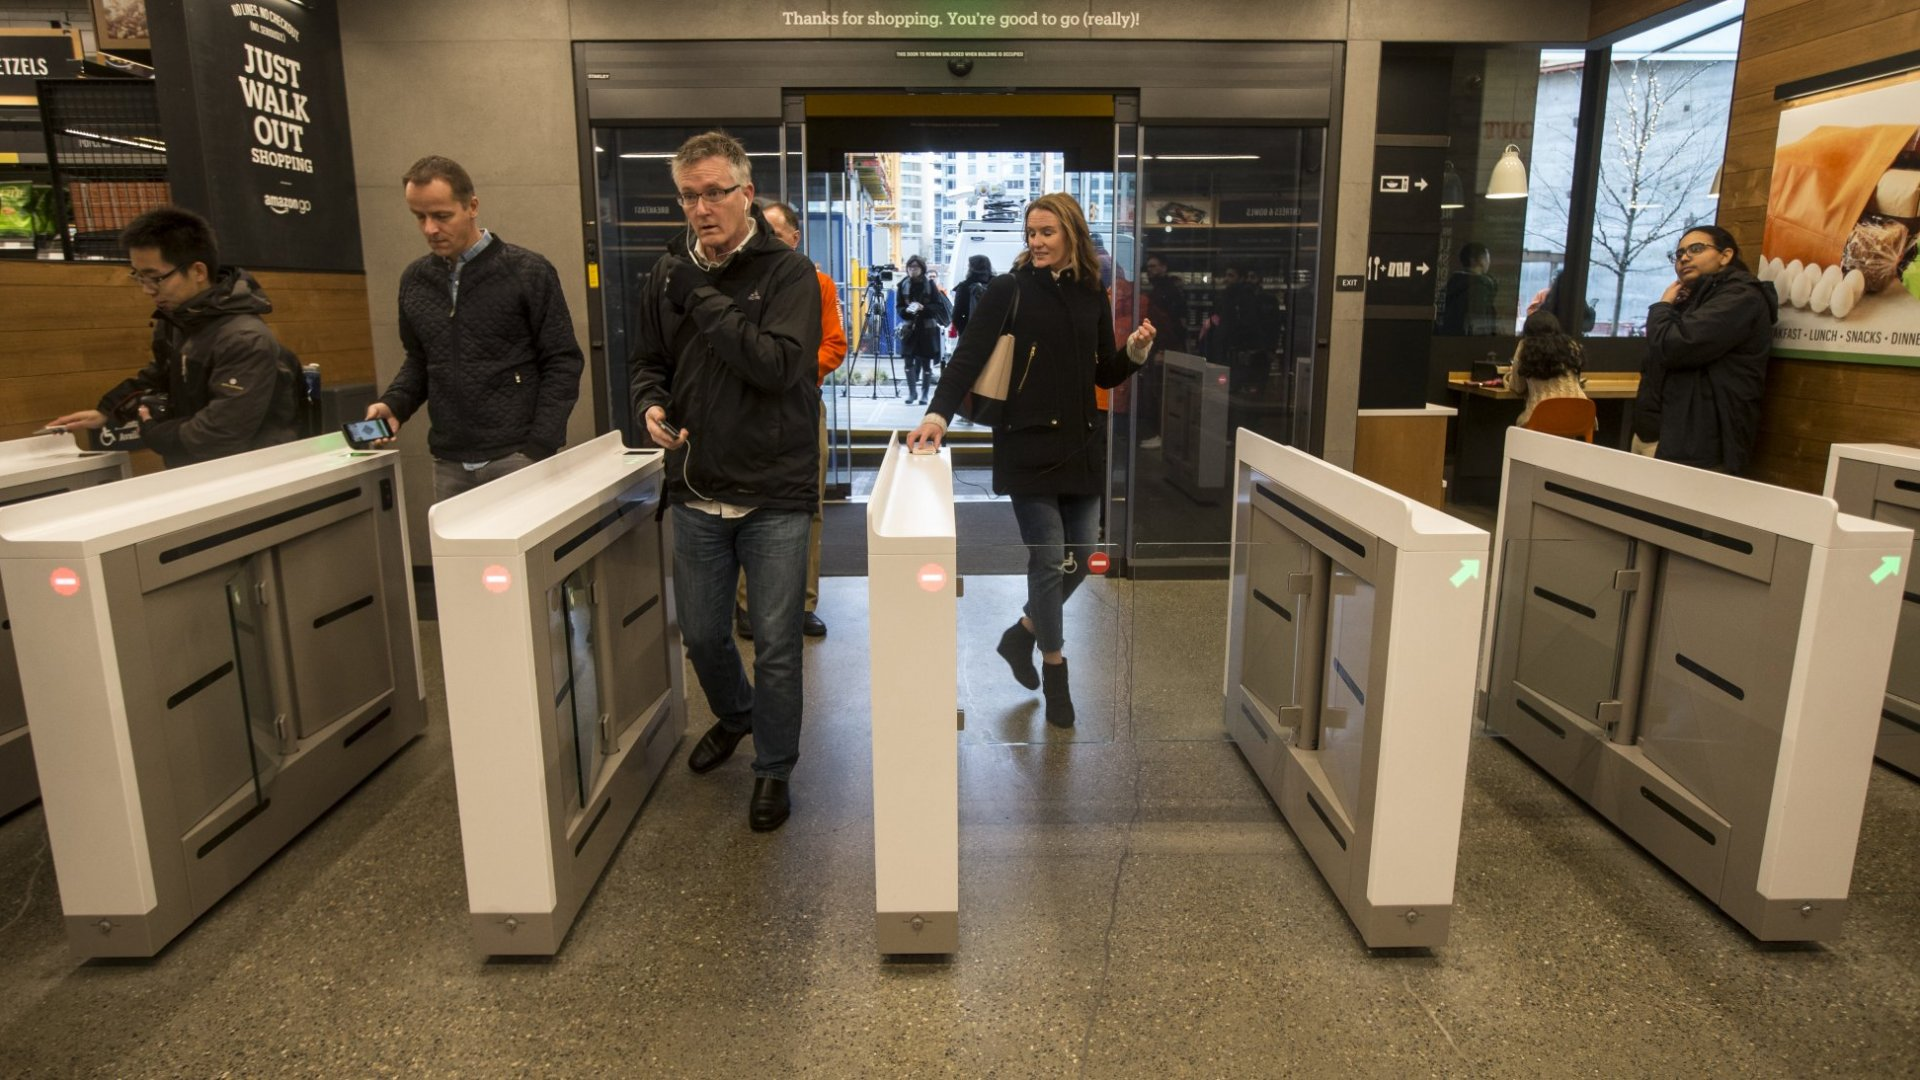 Startups and Retailers Are Racing to Replicate Amazon Go's Cashier-less Model